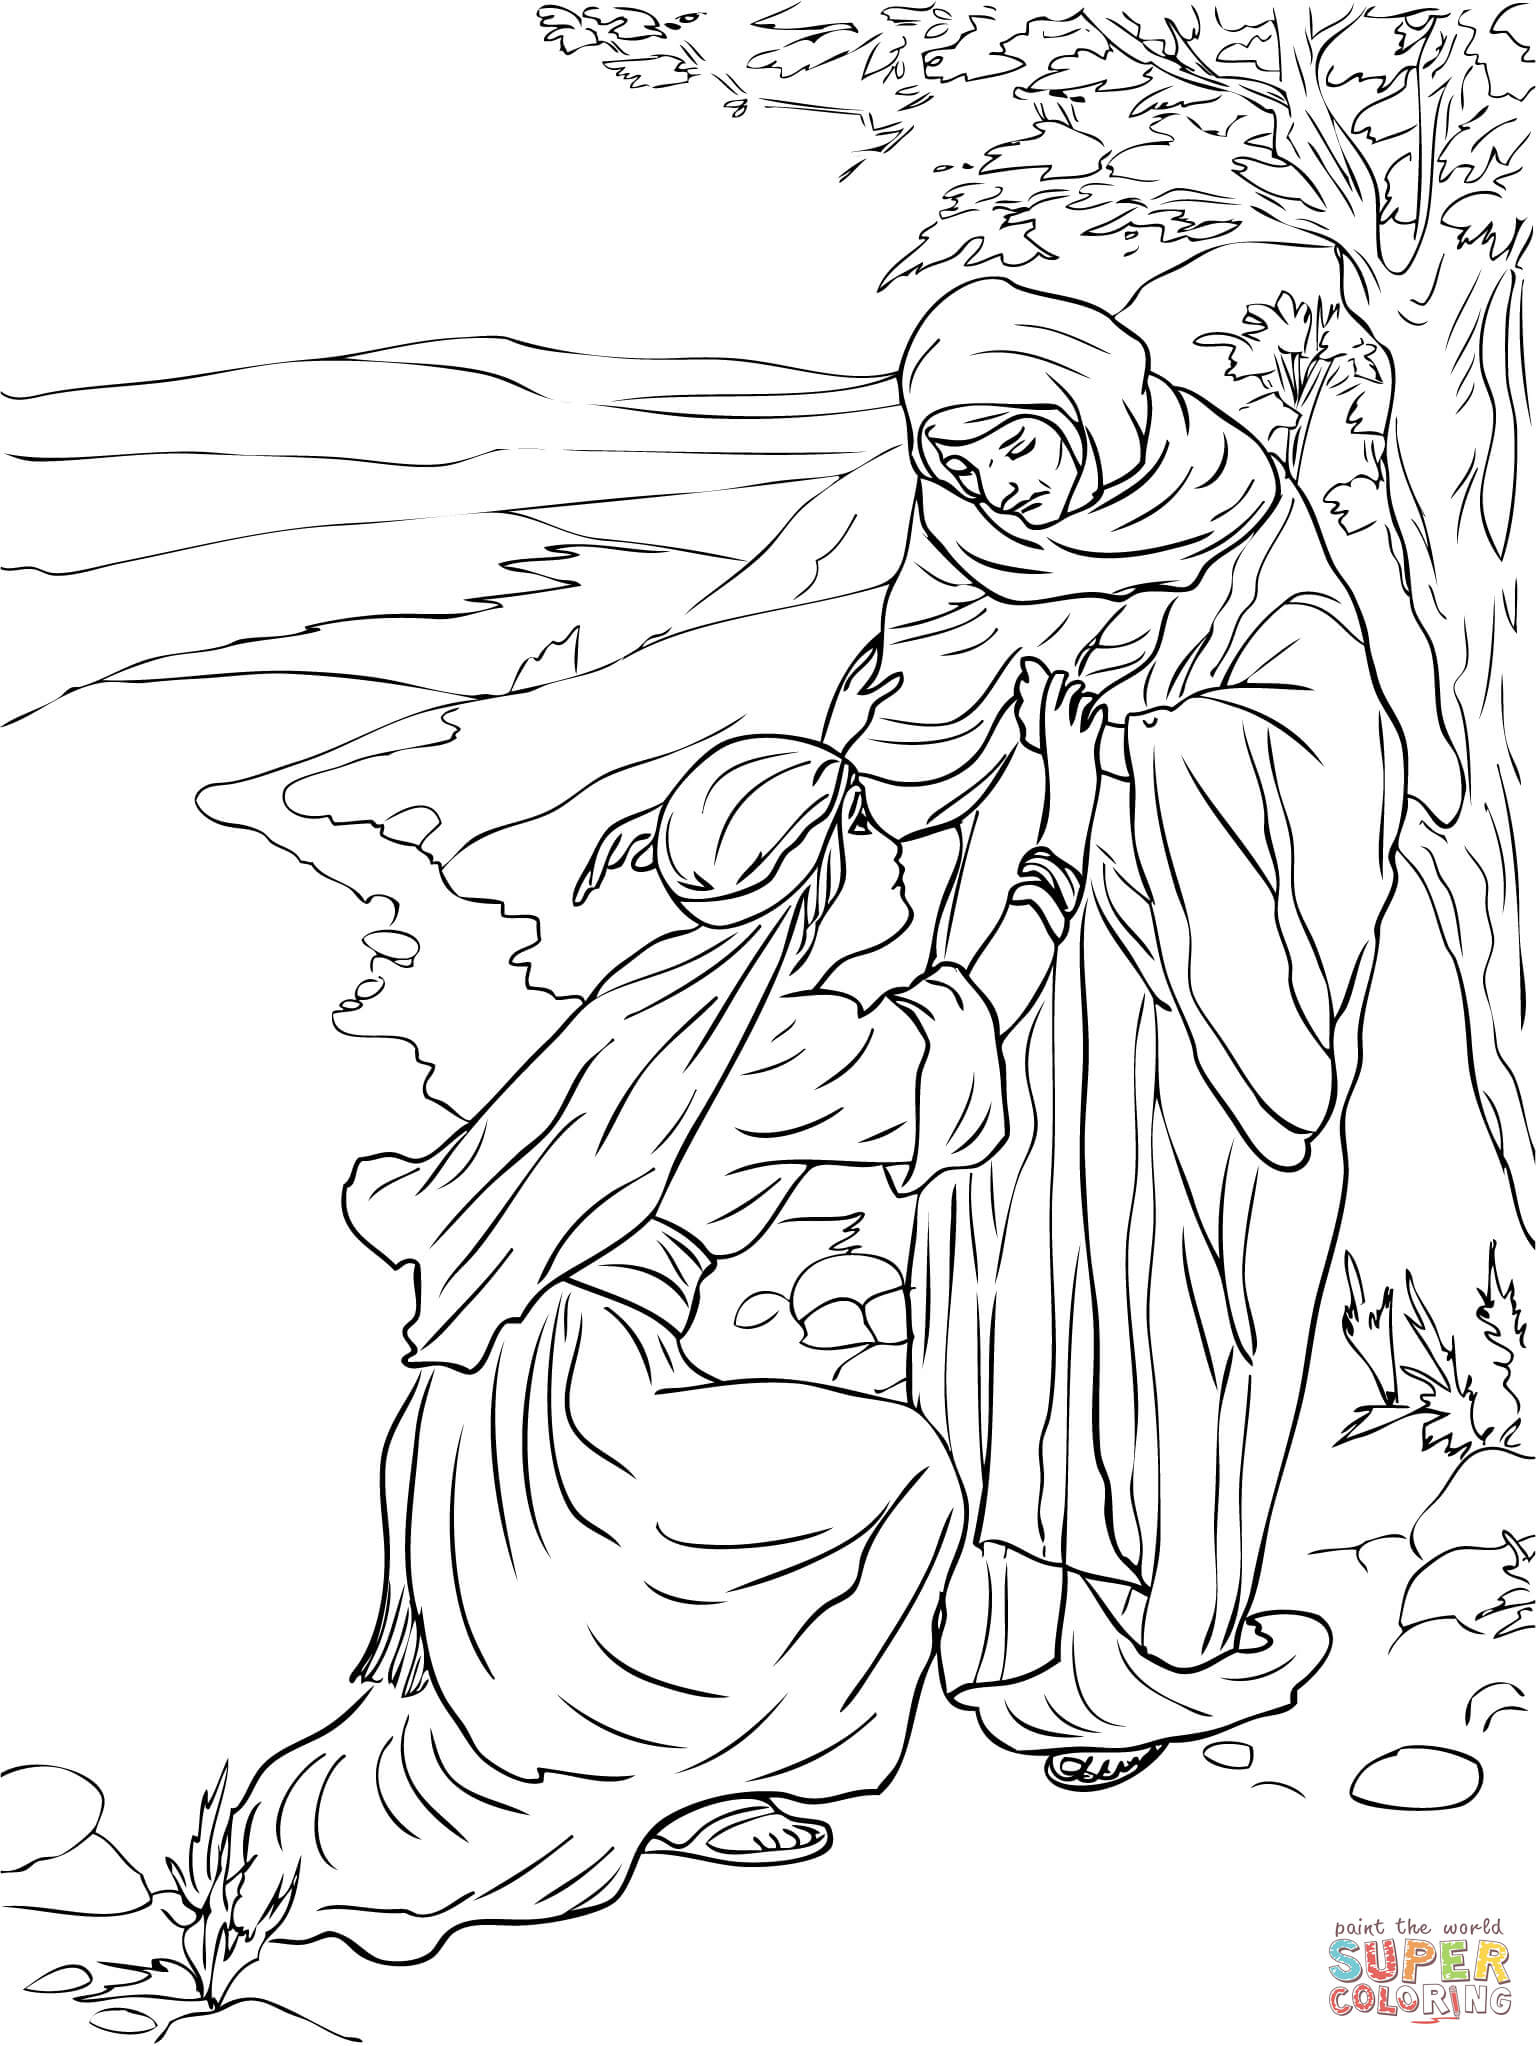 Ruth Coloring Pages  to Print 13l - To print for your project